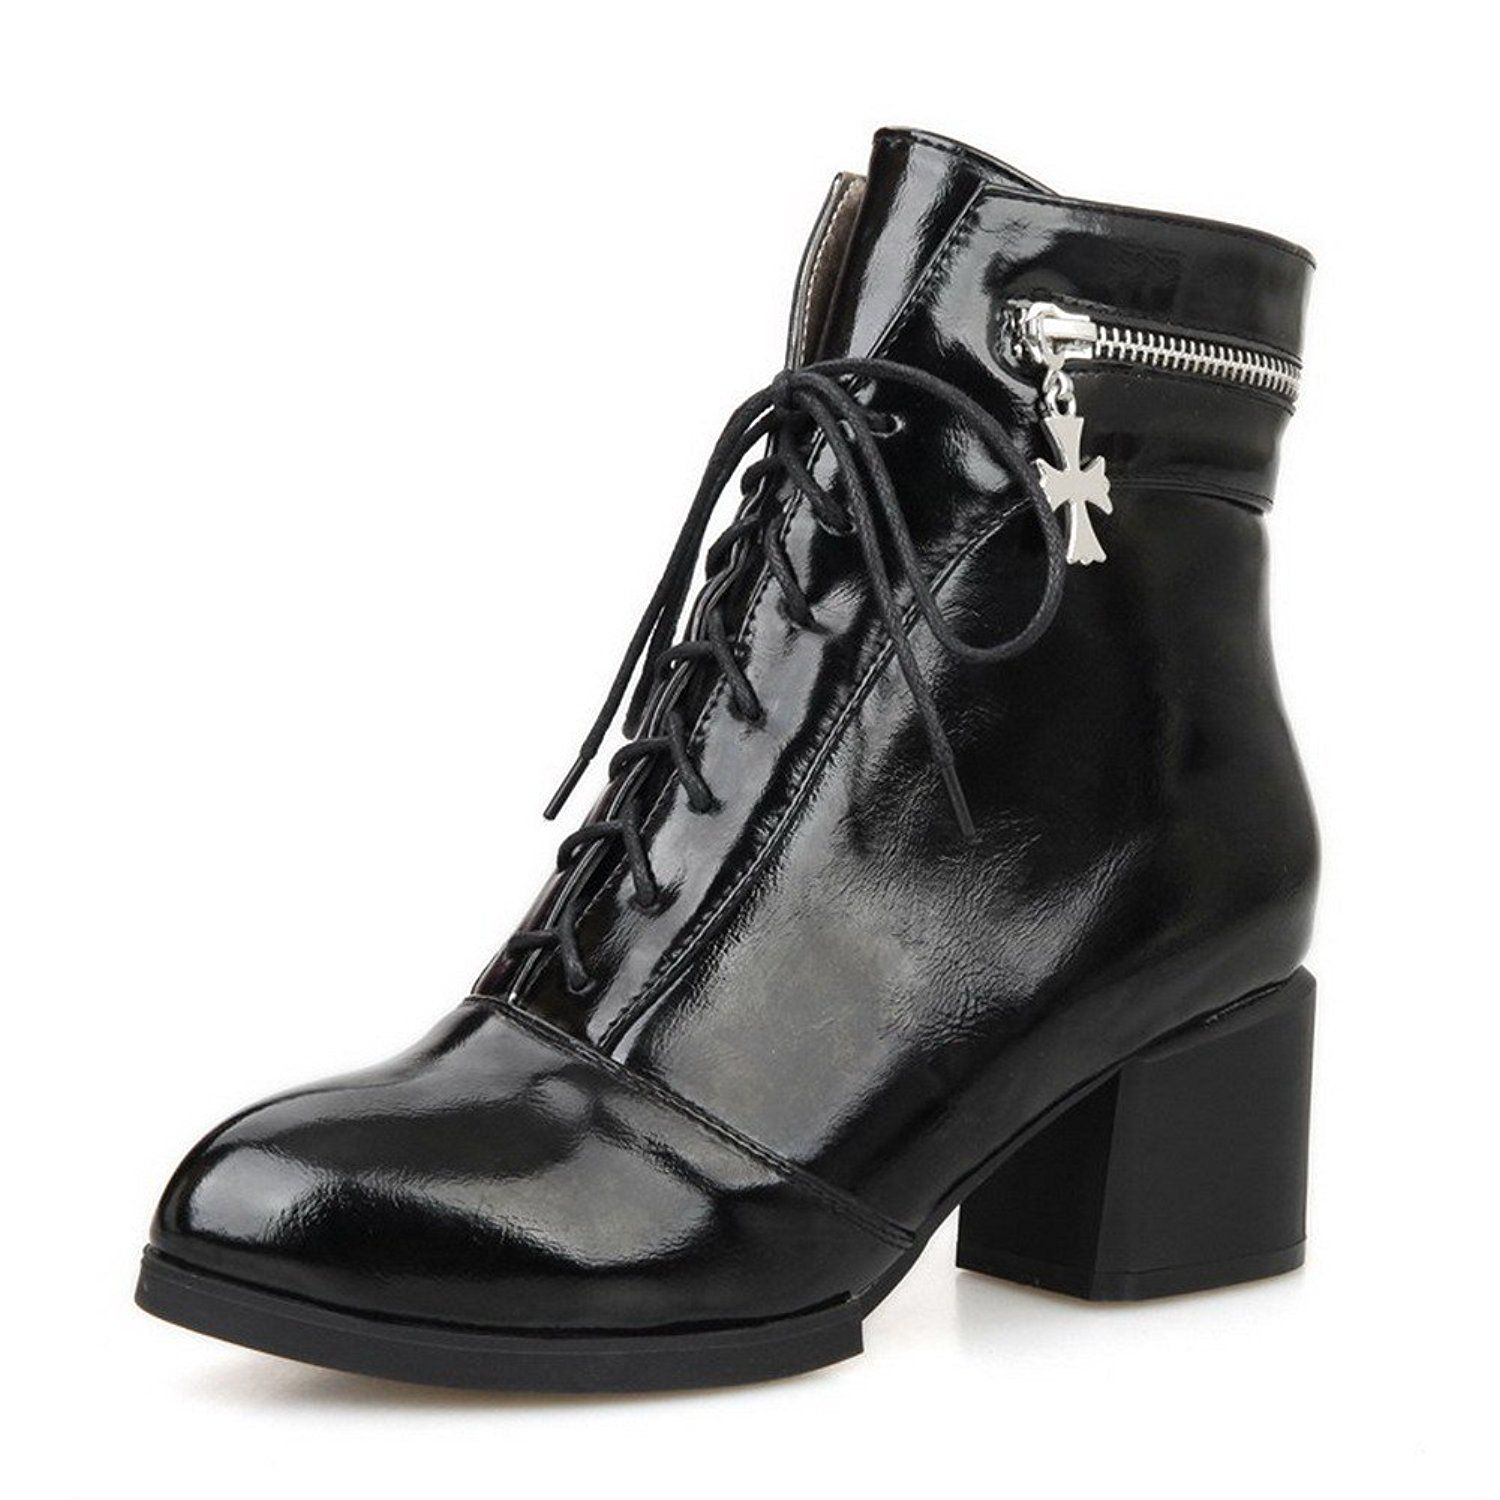 Maymeenth Women's PU Blend Materials Round Closed Toe Low-top Kitten-heels Boots ** Check this awesome product by going to the link at the image.